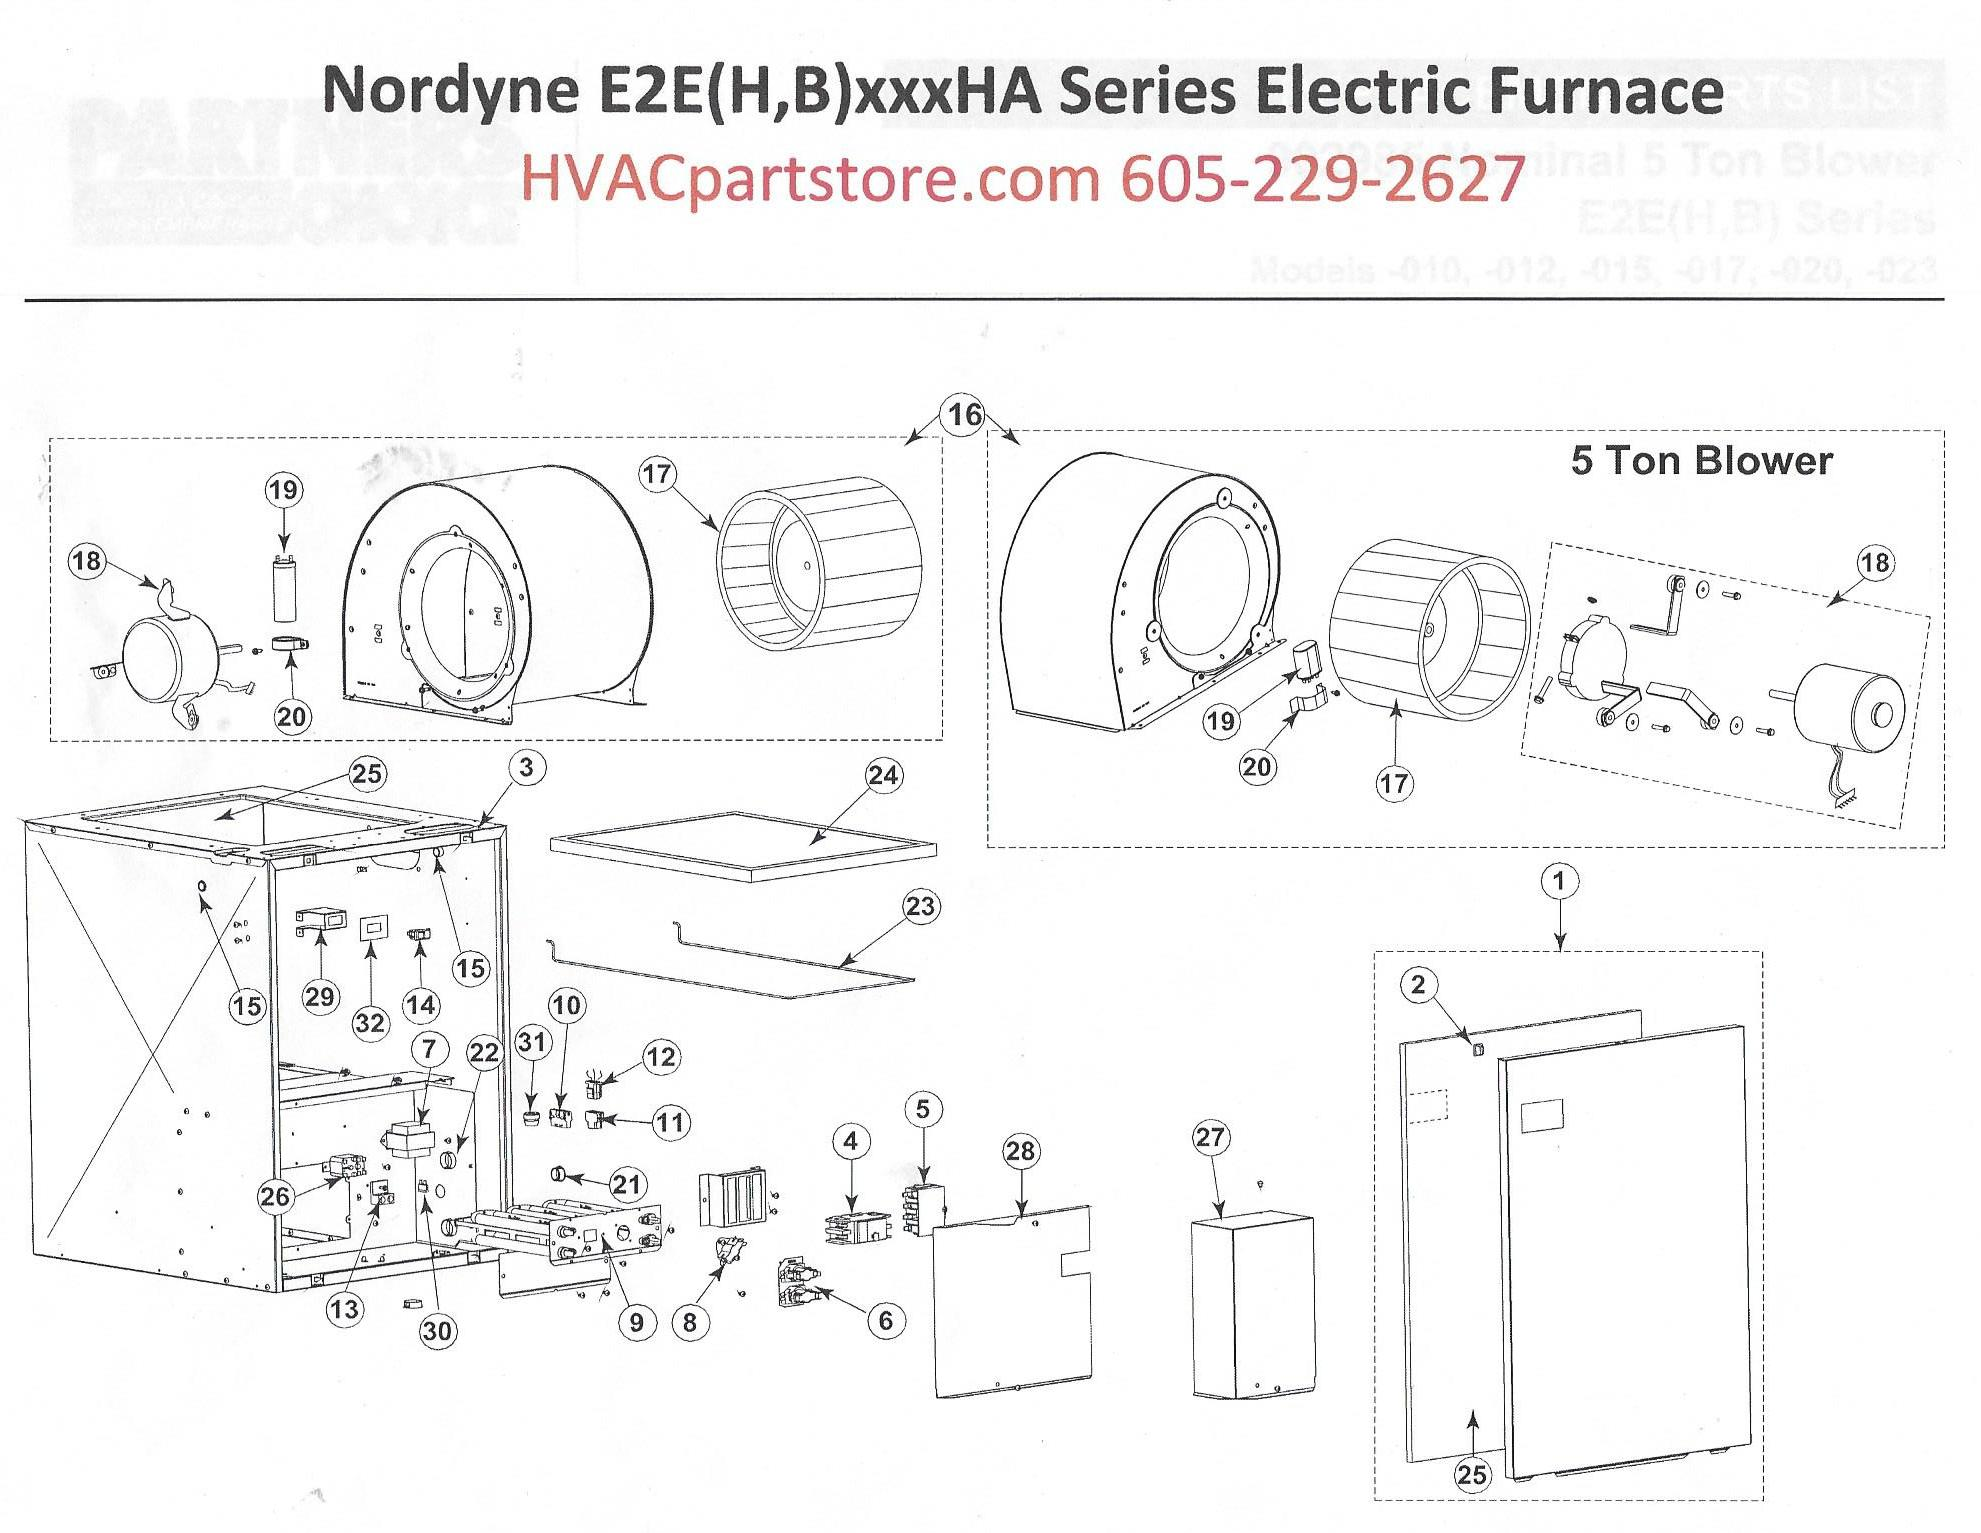 E2EB015HB Nordyne Electric Furnace Parts HVACpartstore – Intertherm E2eb 015ha Wiring-diagram Sequence